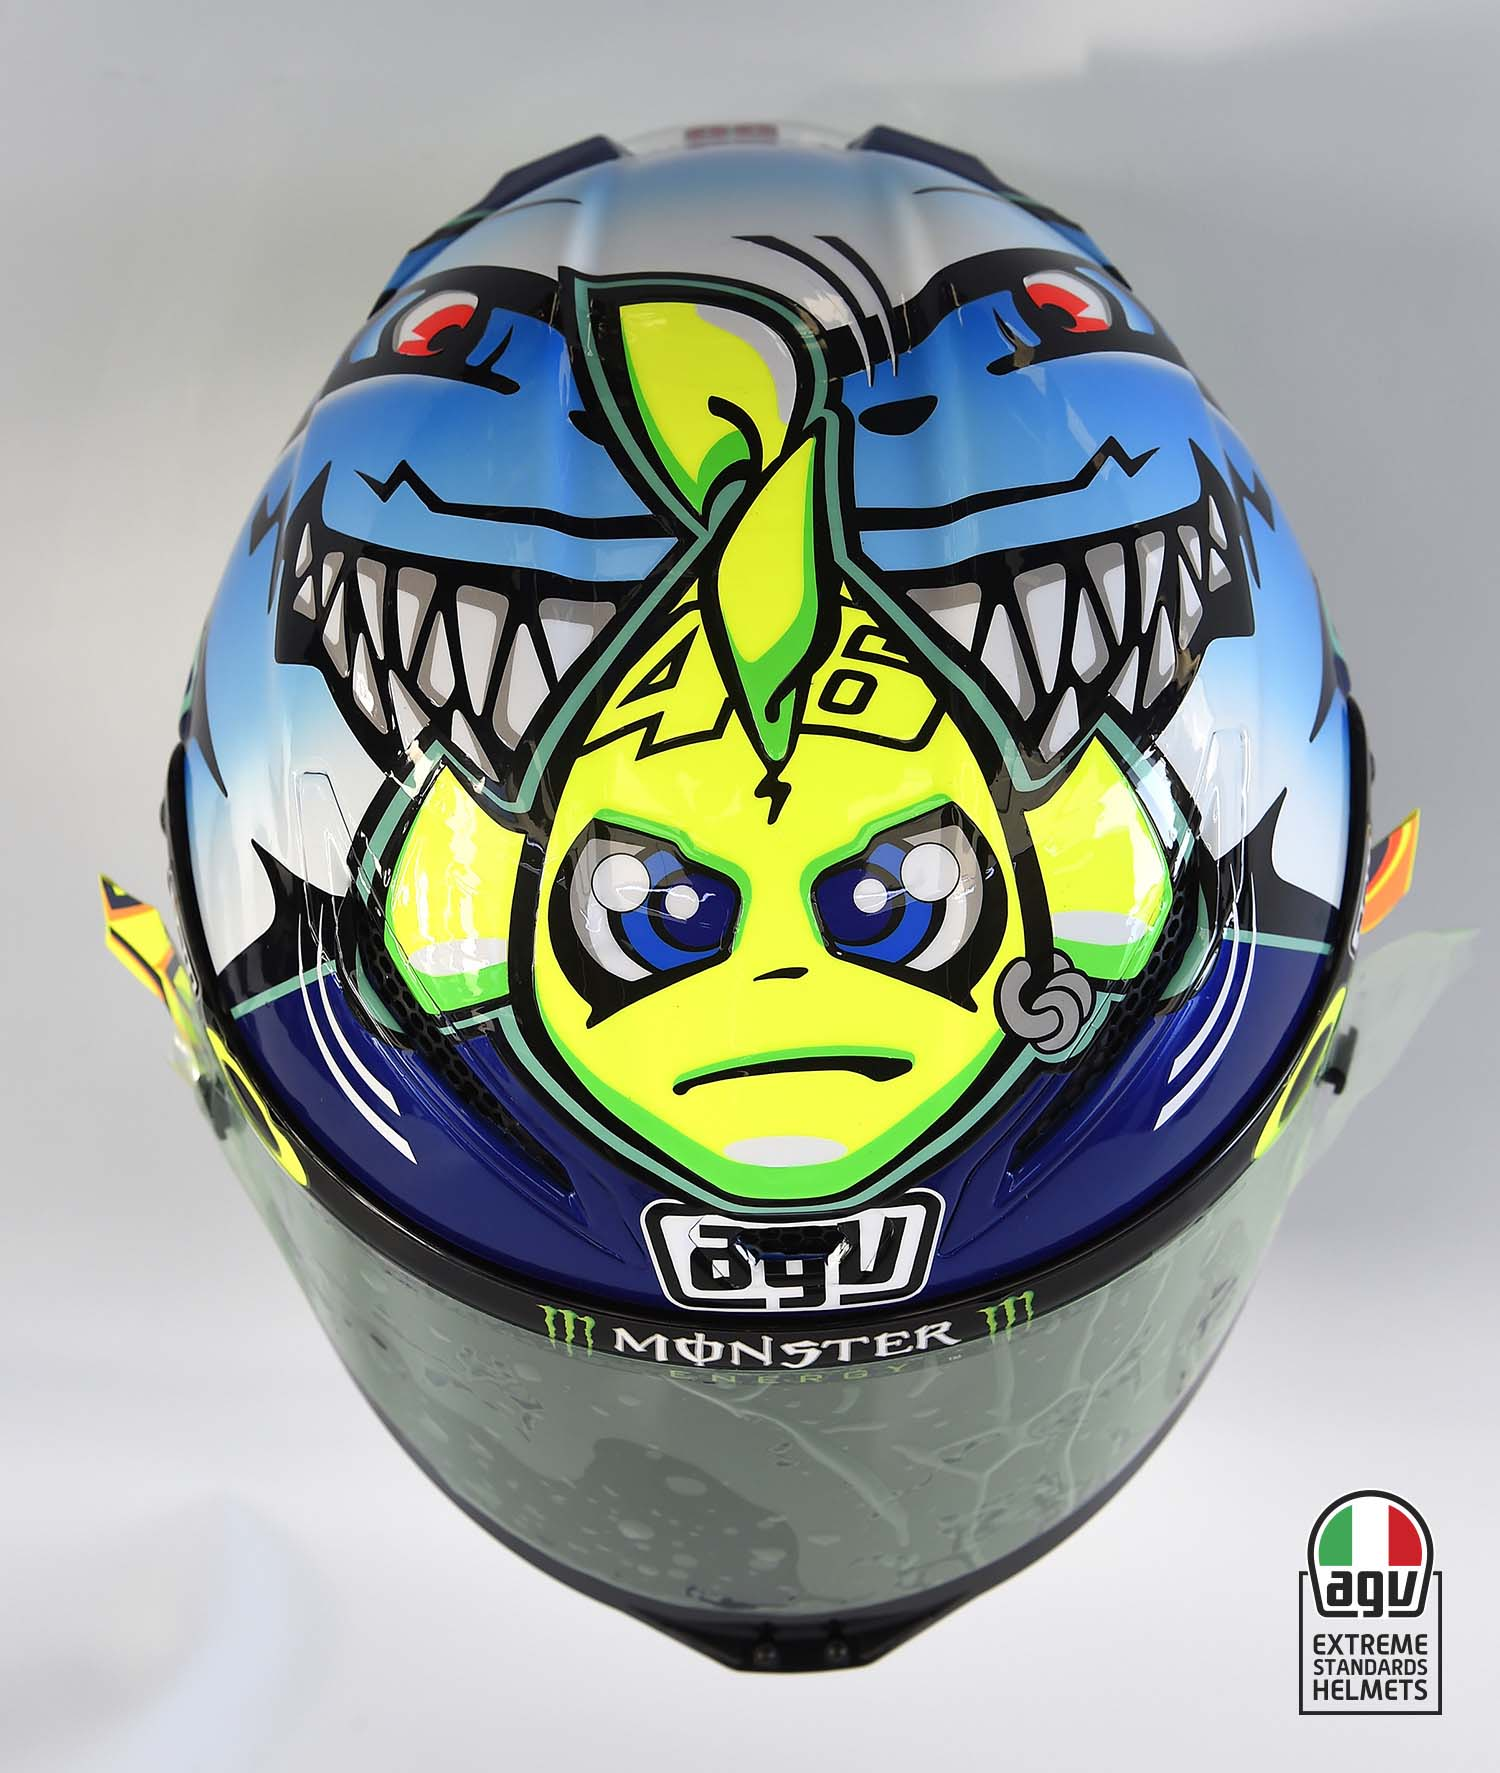 valentino rossi s 2015 misano agv helmet asphalt rubber. Black Bedroom Furniture Sets. Home Design Ideas